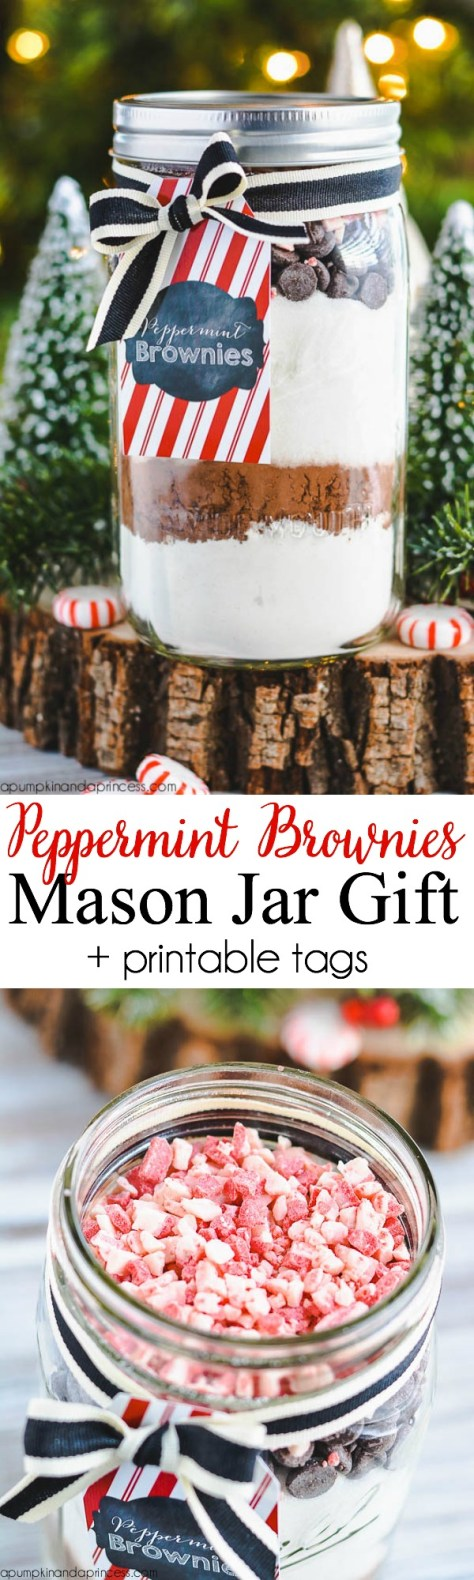 Peppermint Brownies Mason Jar Gifts Tutorial